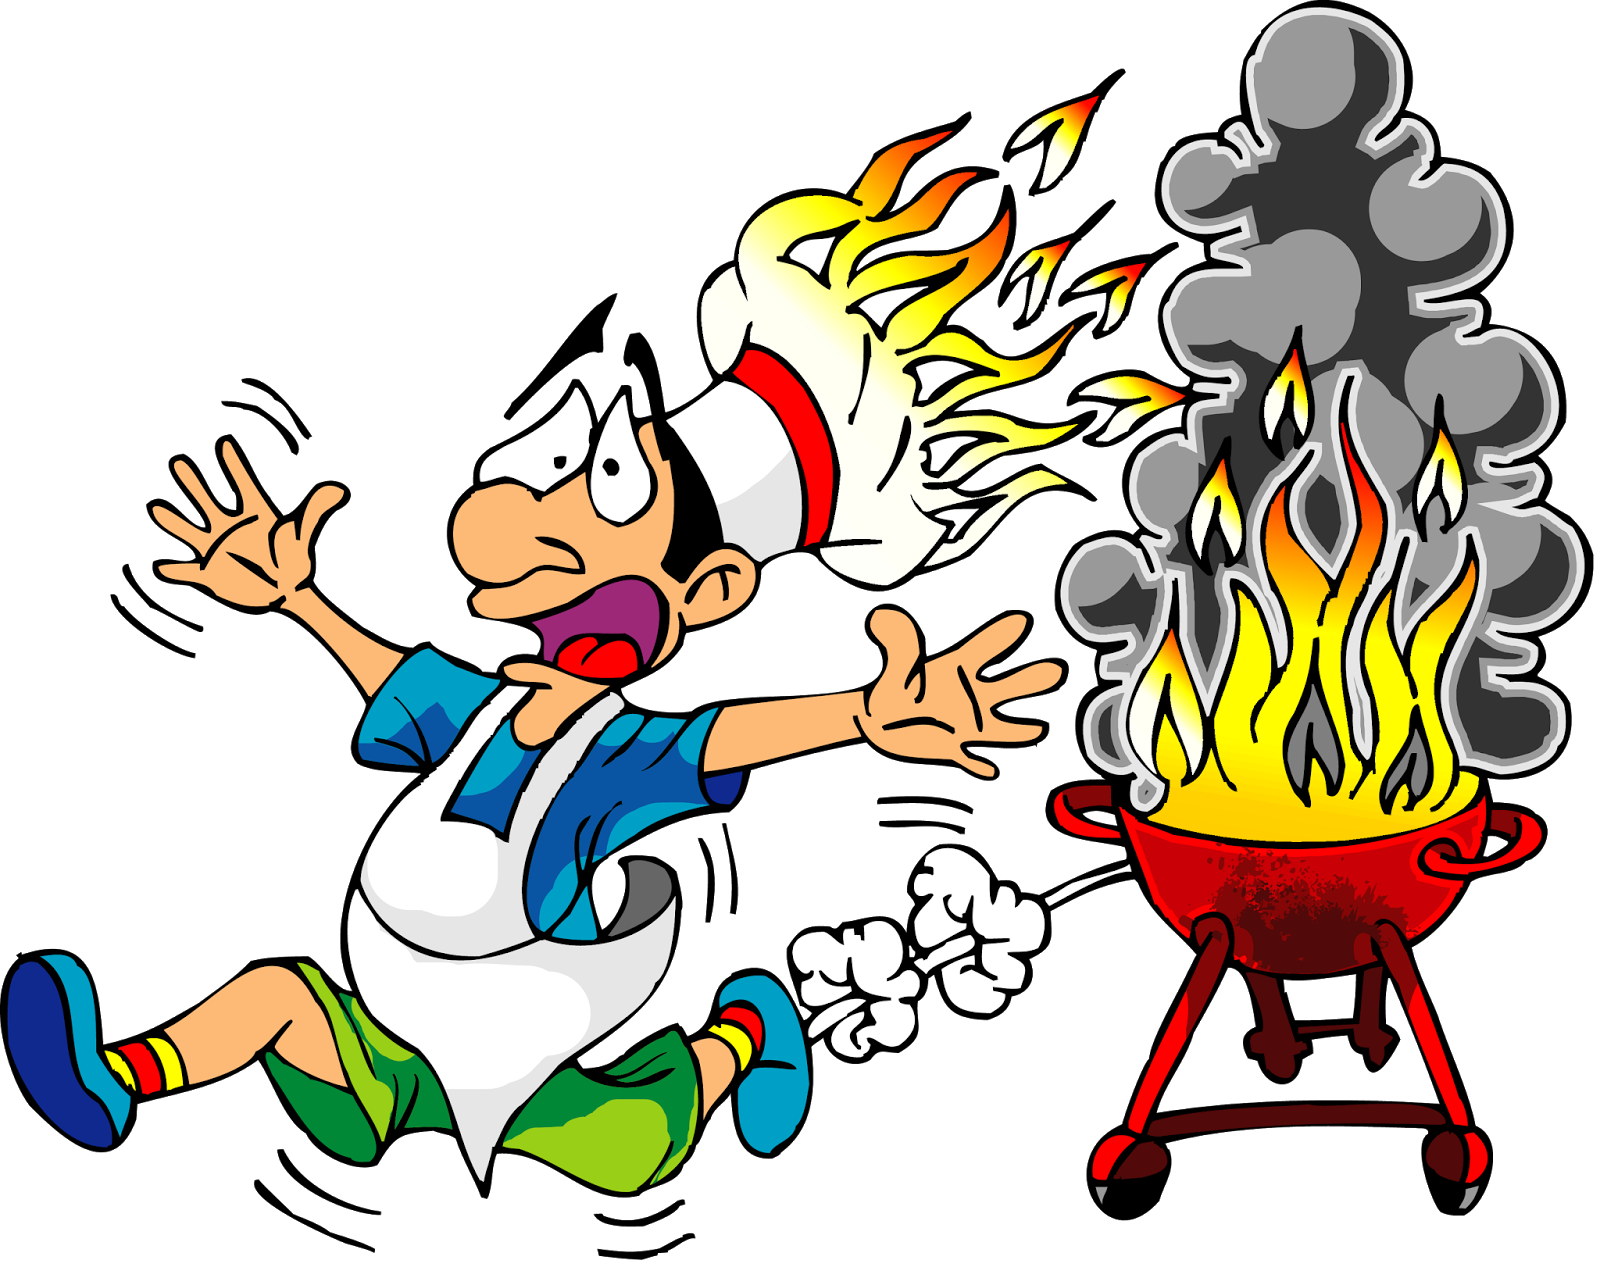 Emergency clipart emergency situation. The blogger august stay